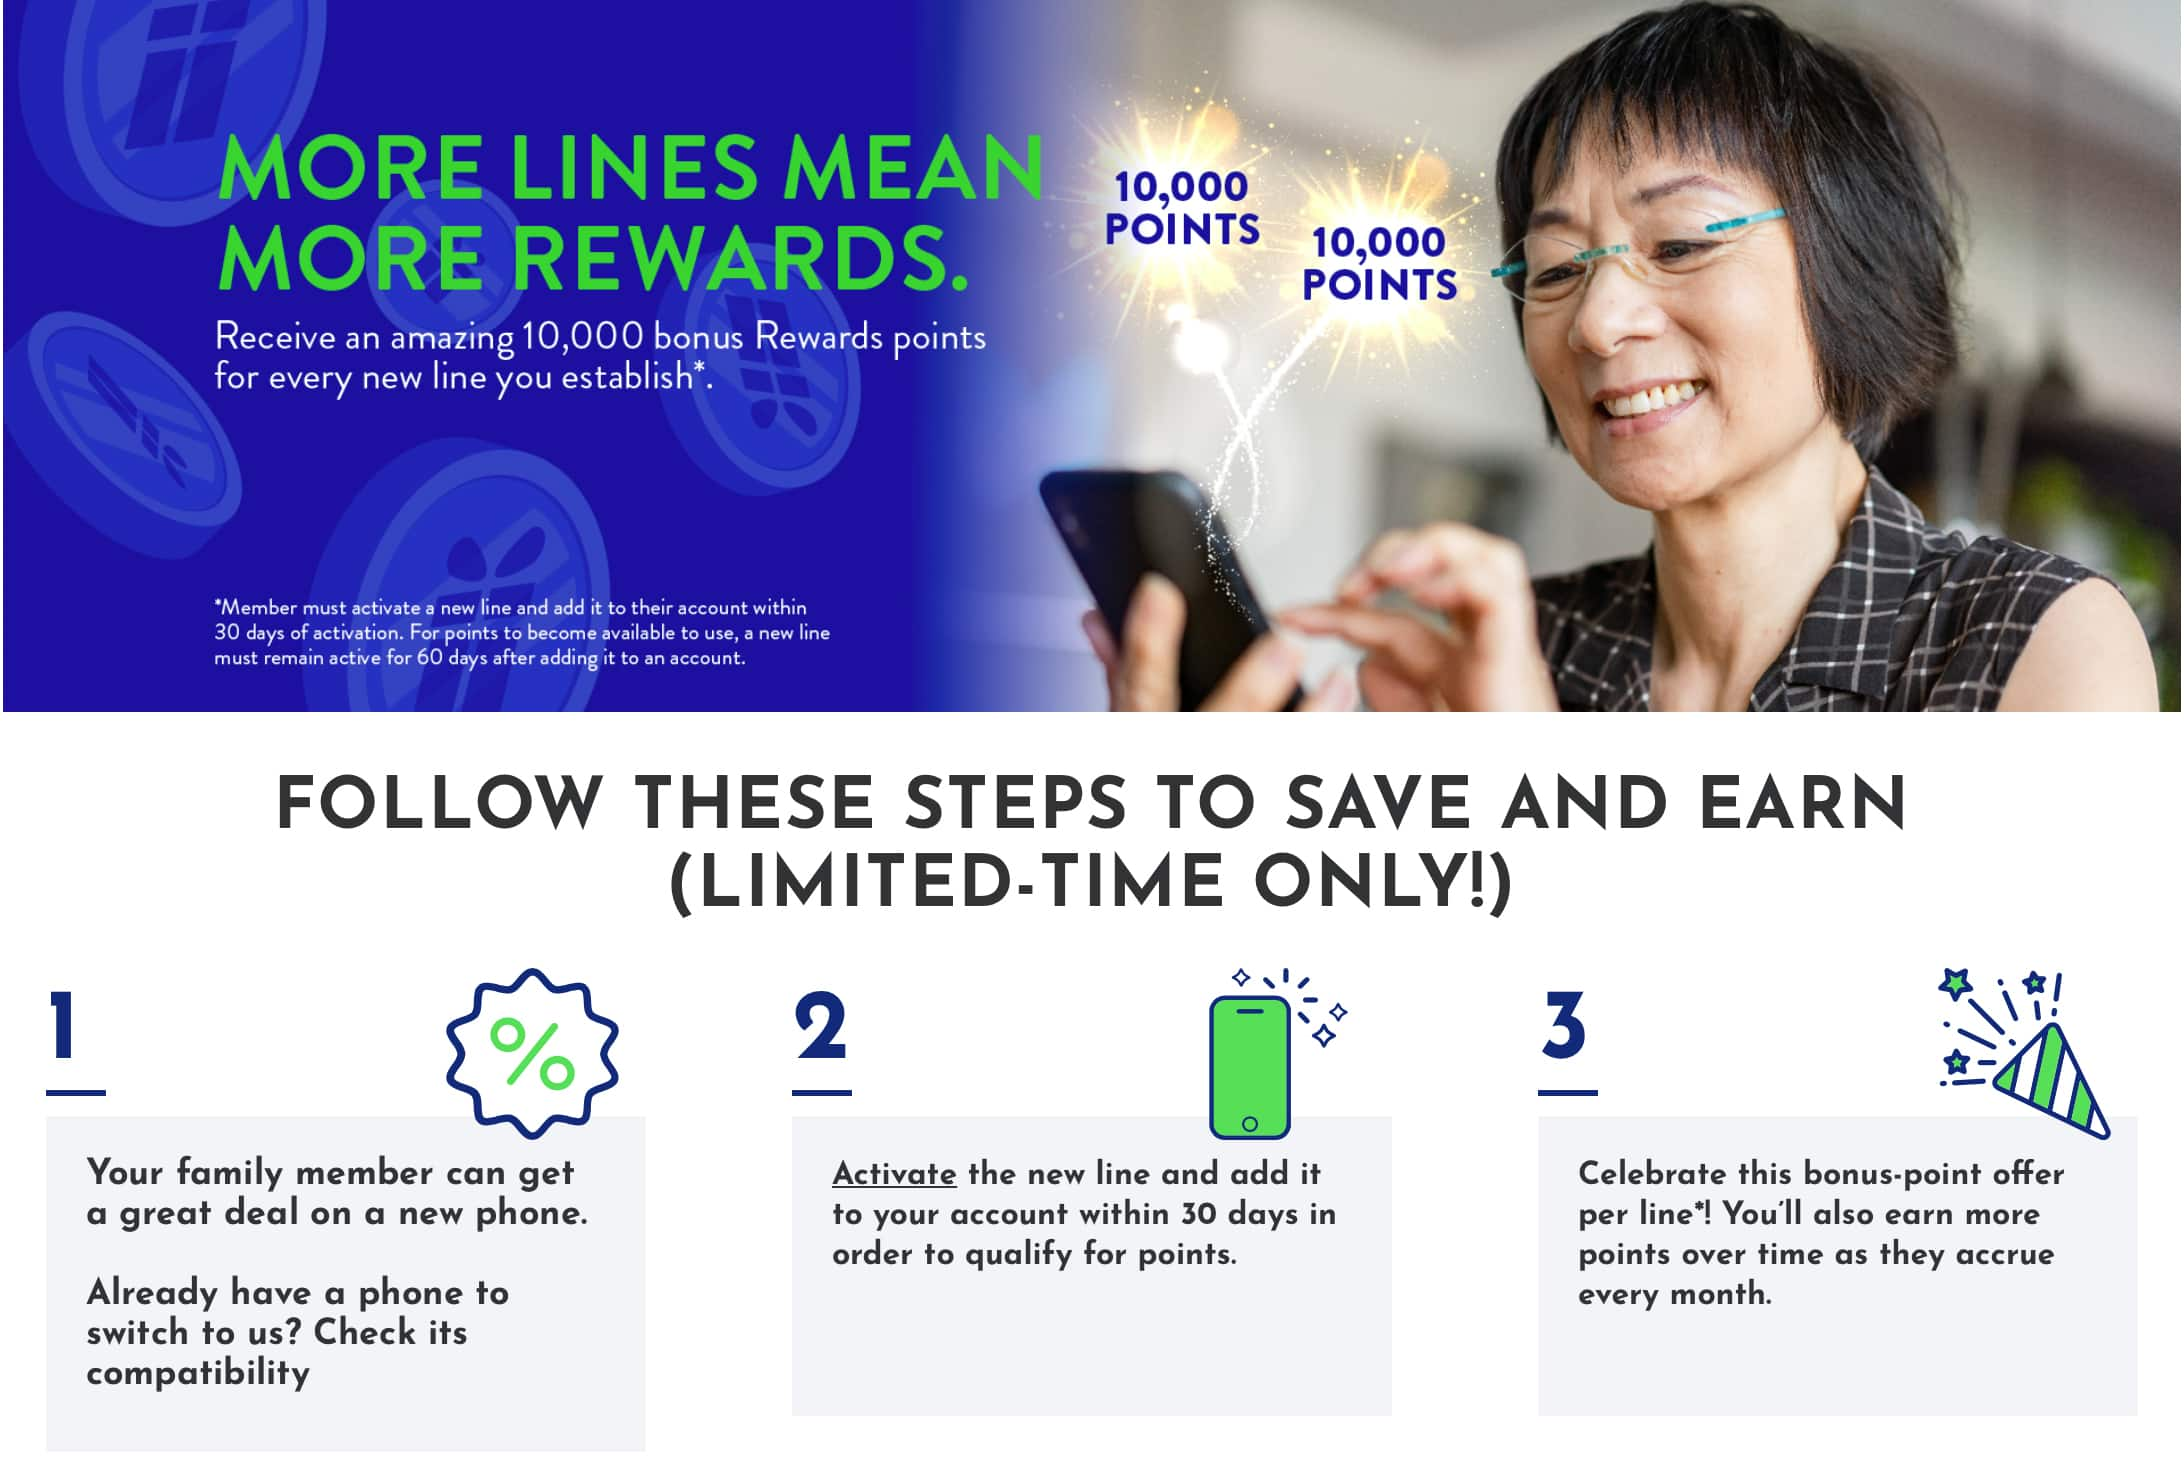 TracFone Holiday Promo: 10,000 reward points with new activation (BYOP eligible)